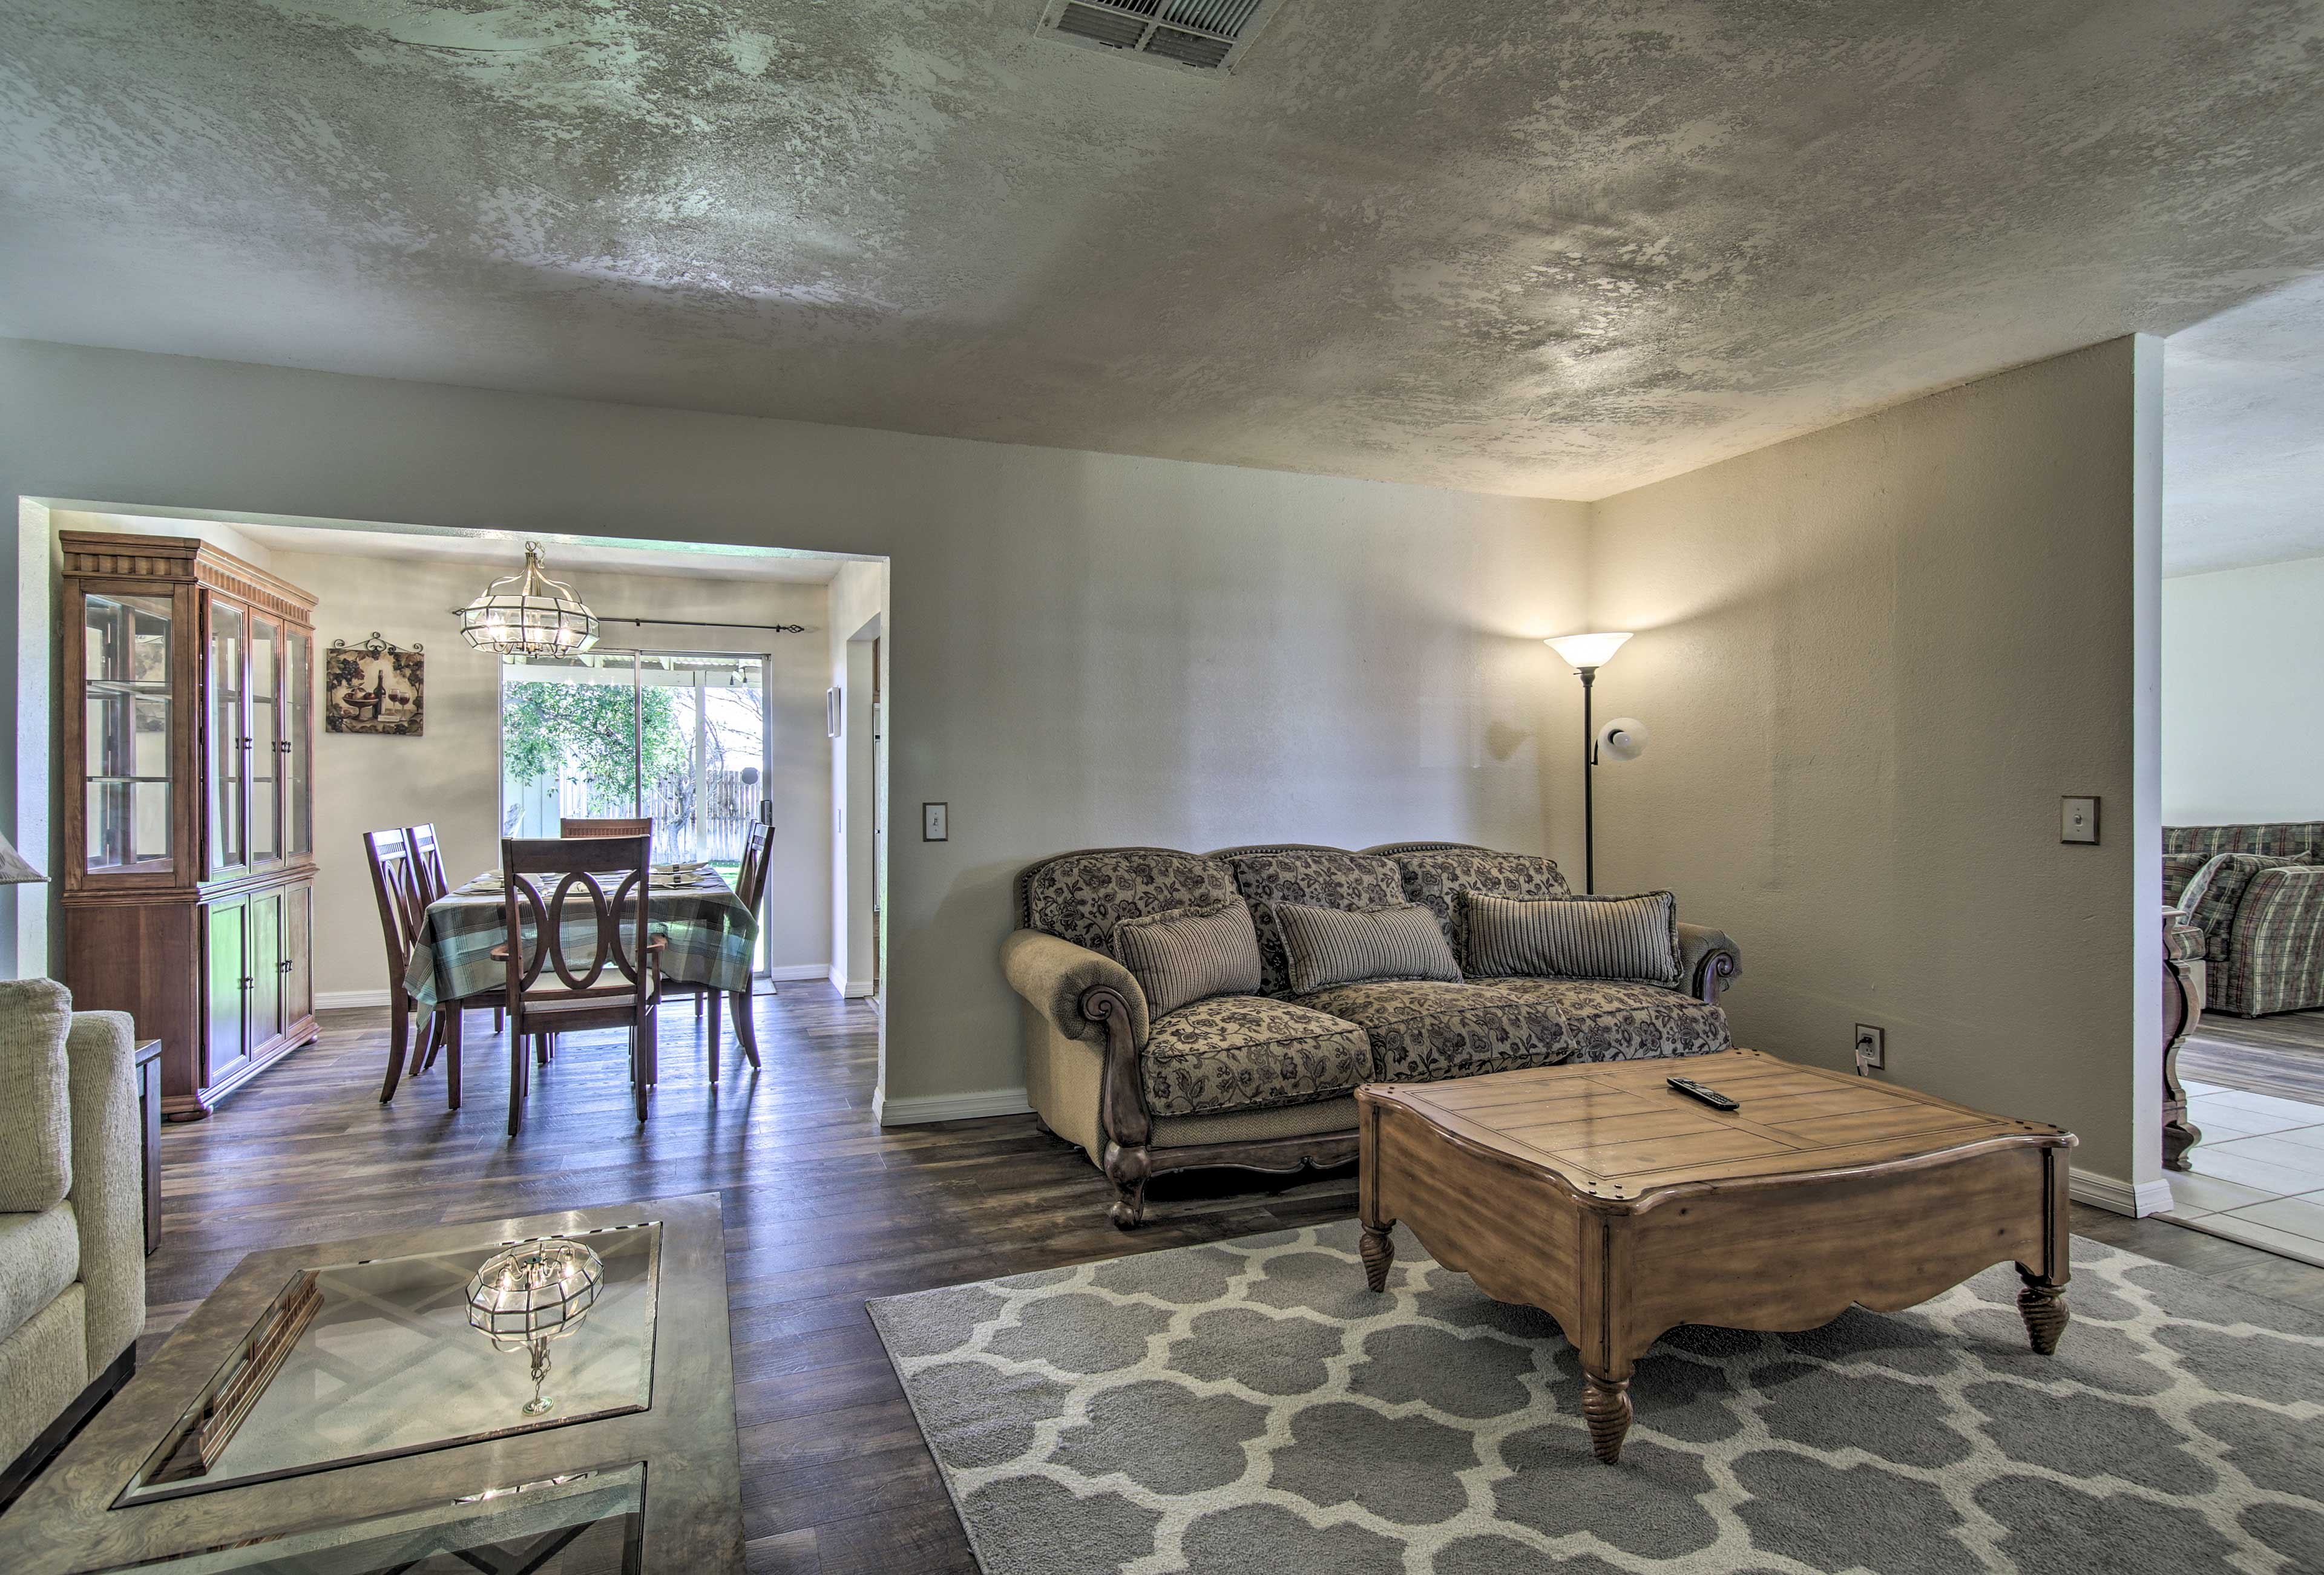 The open floor plan allows each room to flow together.